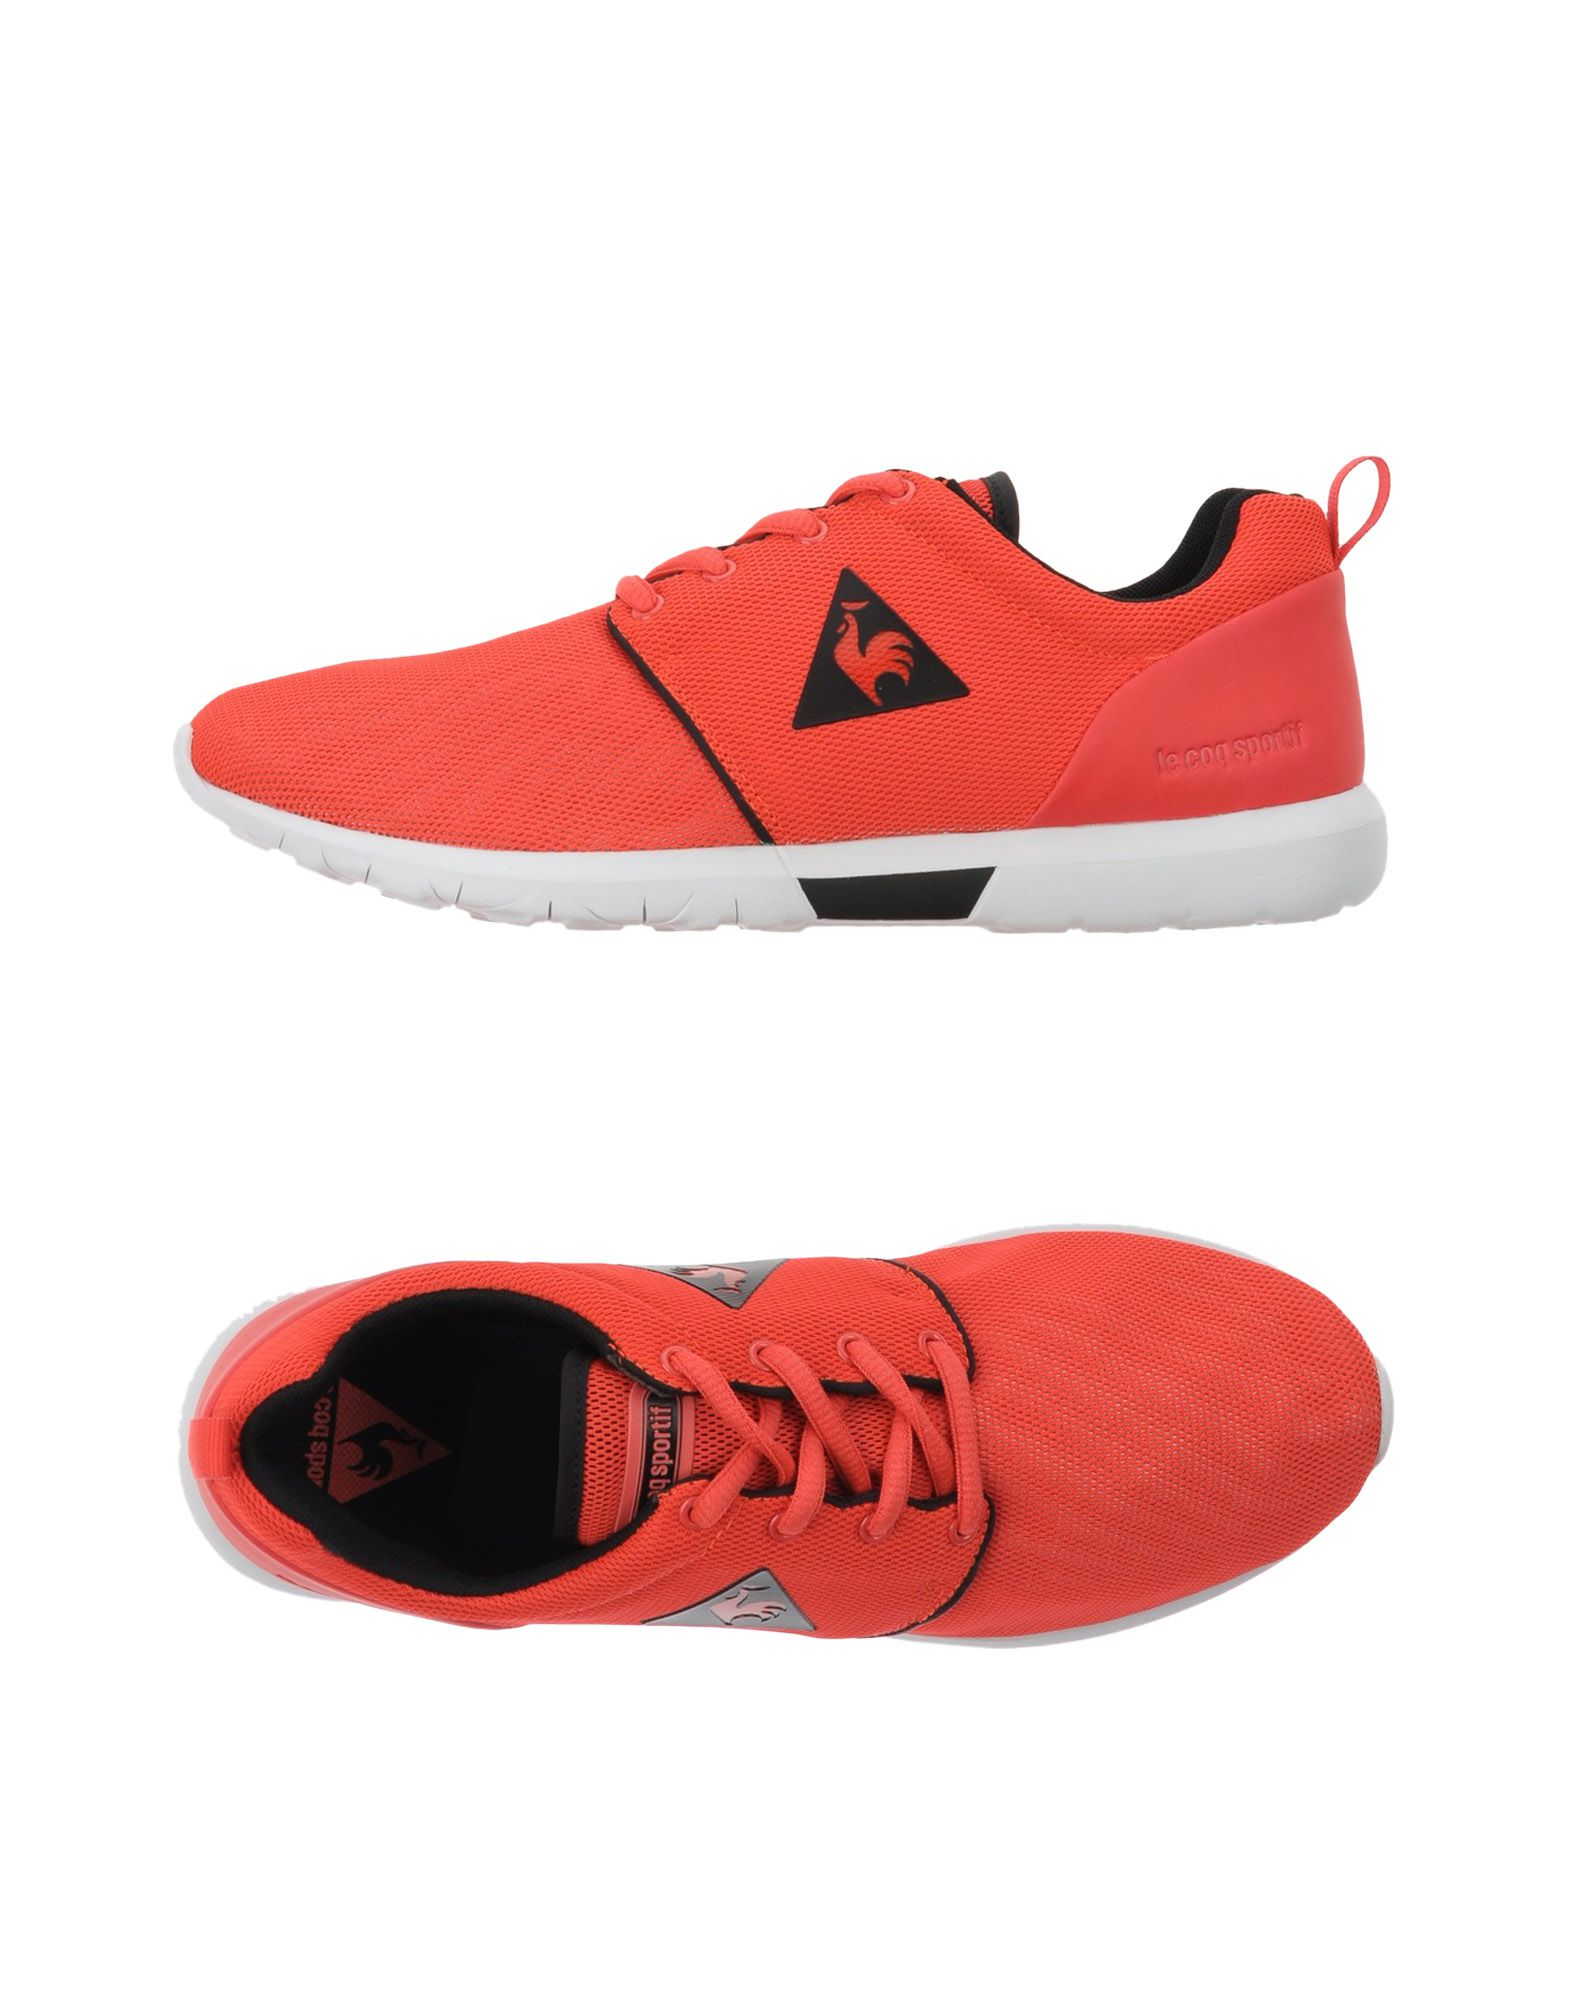 LE COQ SPORTIF Низкие кеды и кроссовки combination of trimming cutter bar high quality deburring scraping handle nb1100 ng1000 rb1000 sc1300 bs1010